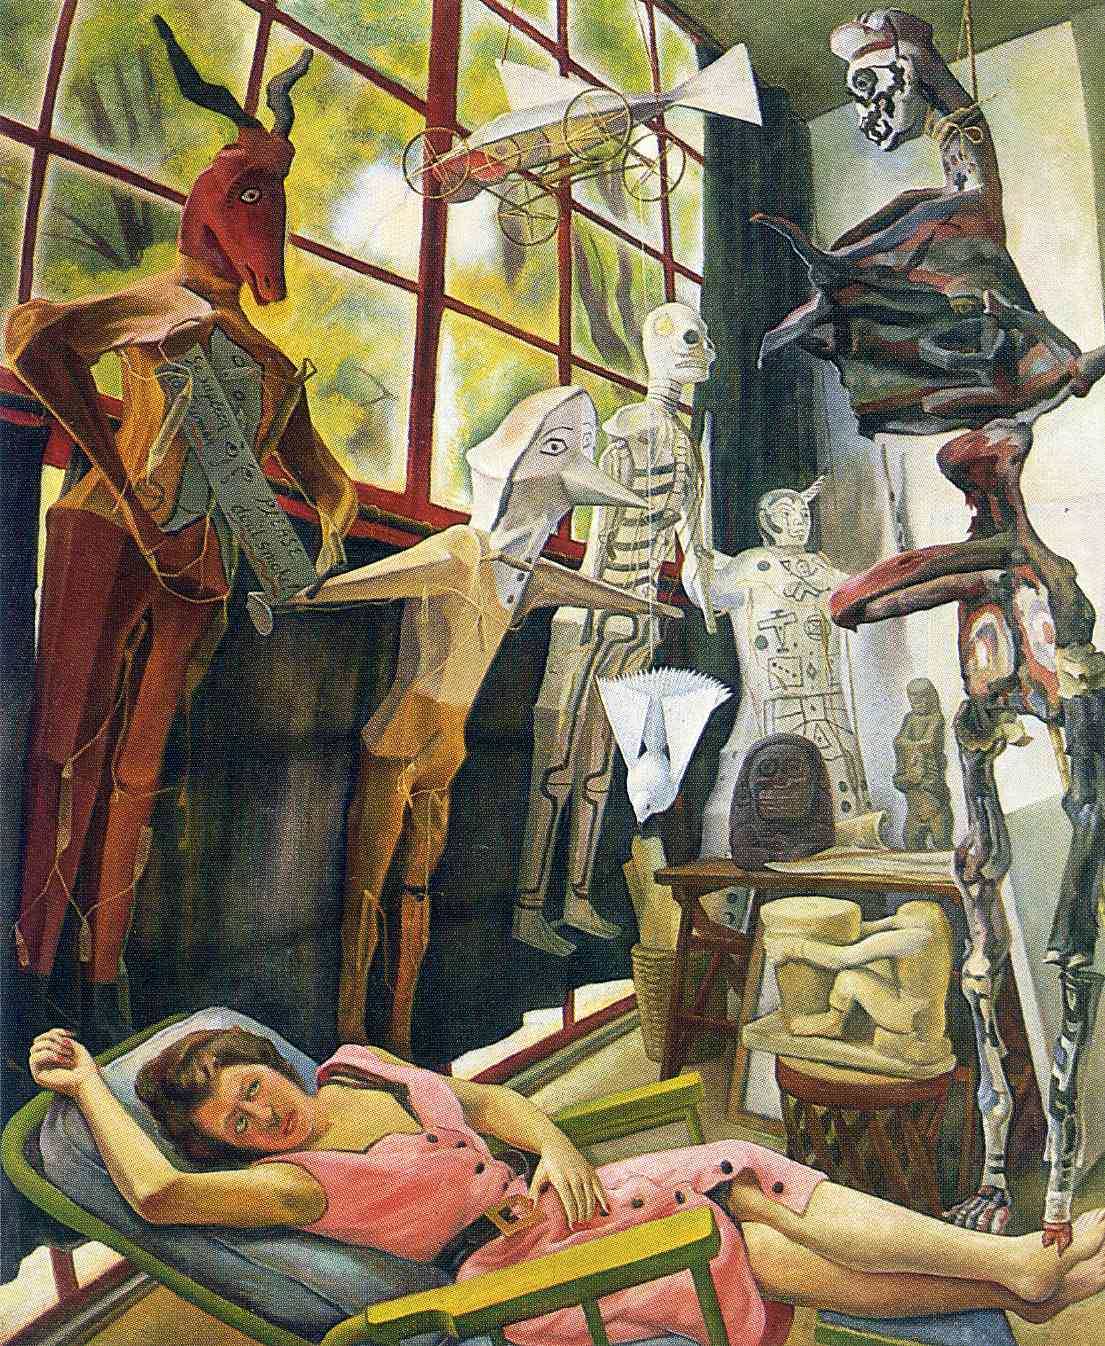 The Painter's Studio, 1954